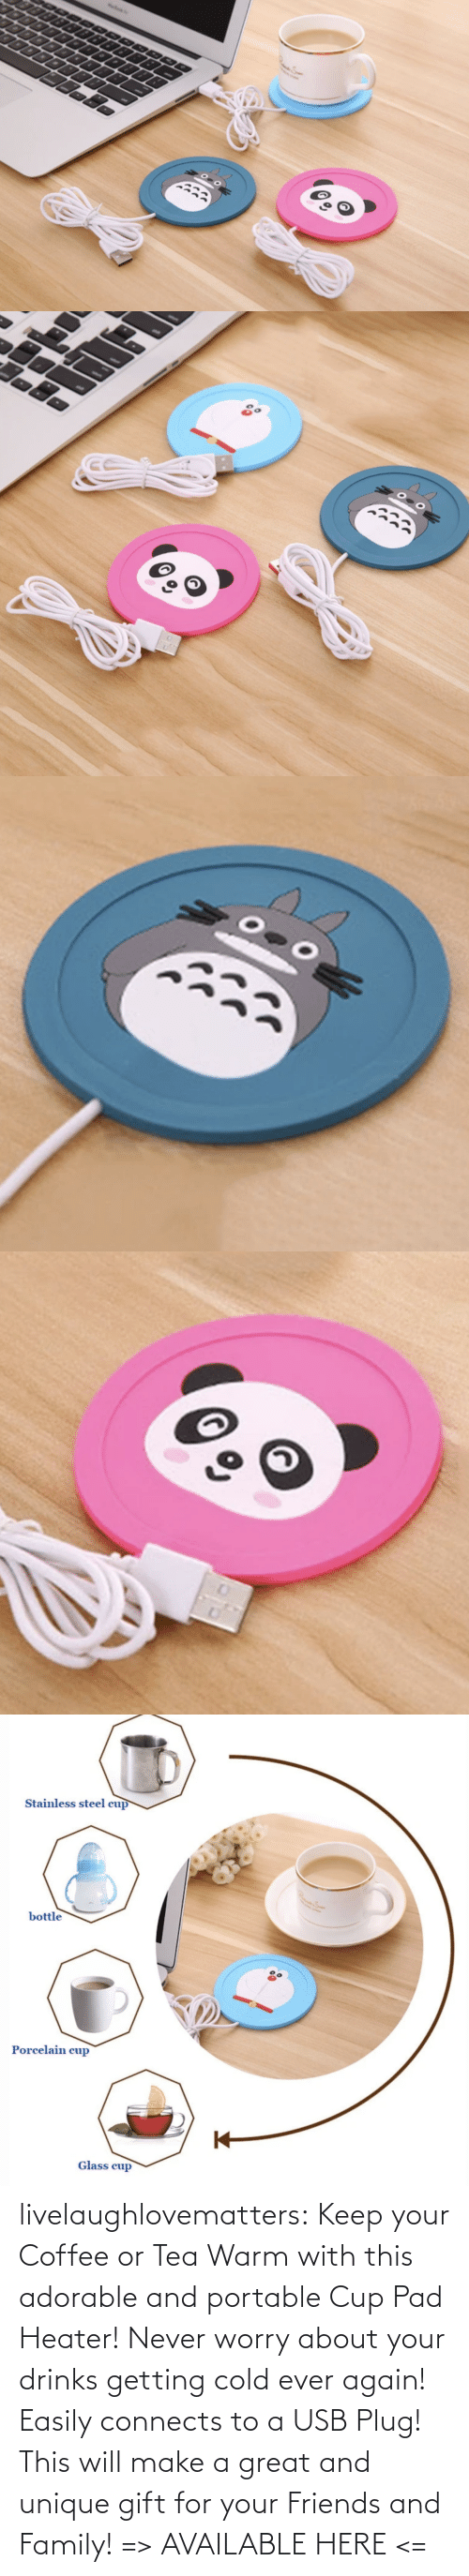 plug: livelaughlovematters: Keep your Coffee or Tea Warm with this adorable and portable Cup Pad Heater! Never worry about your drinks getting cold ever again! Easily connects to a USB Plug! This will make a great and unique gift for your Friends and Family! => AVAILABLE HERE <=